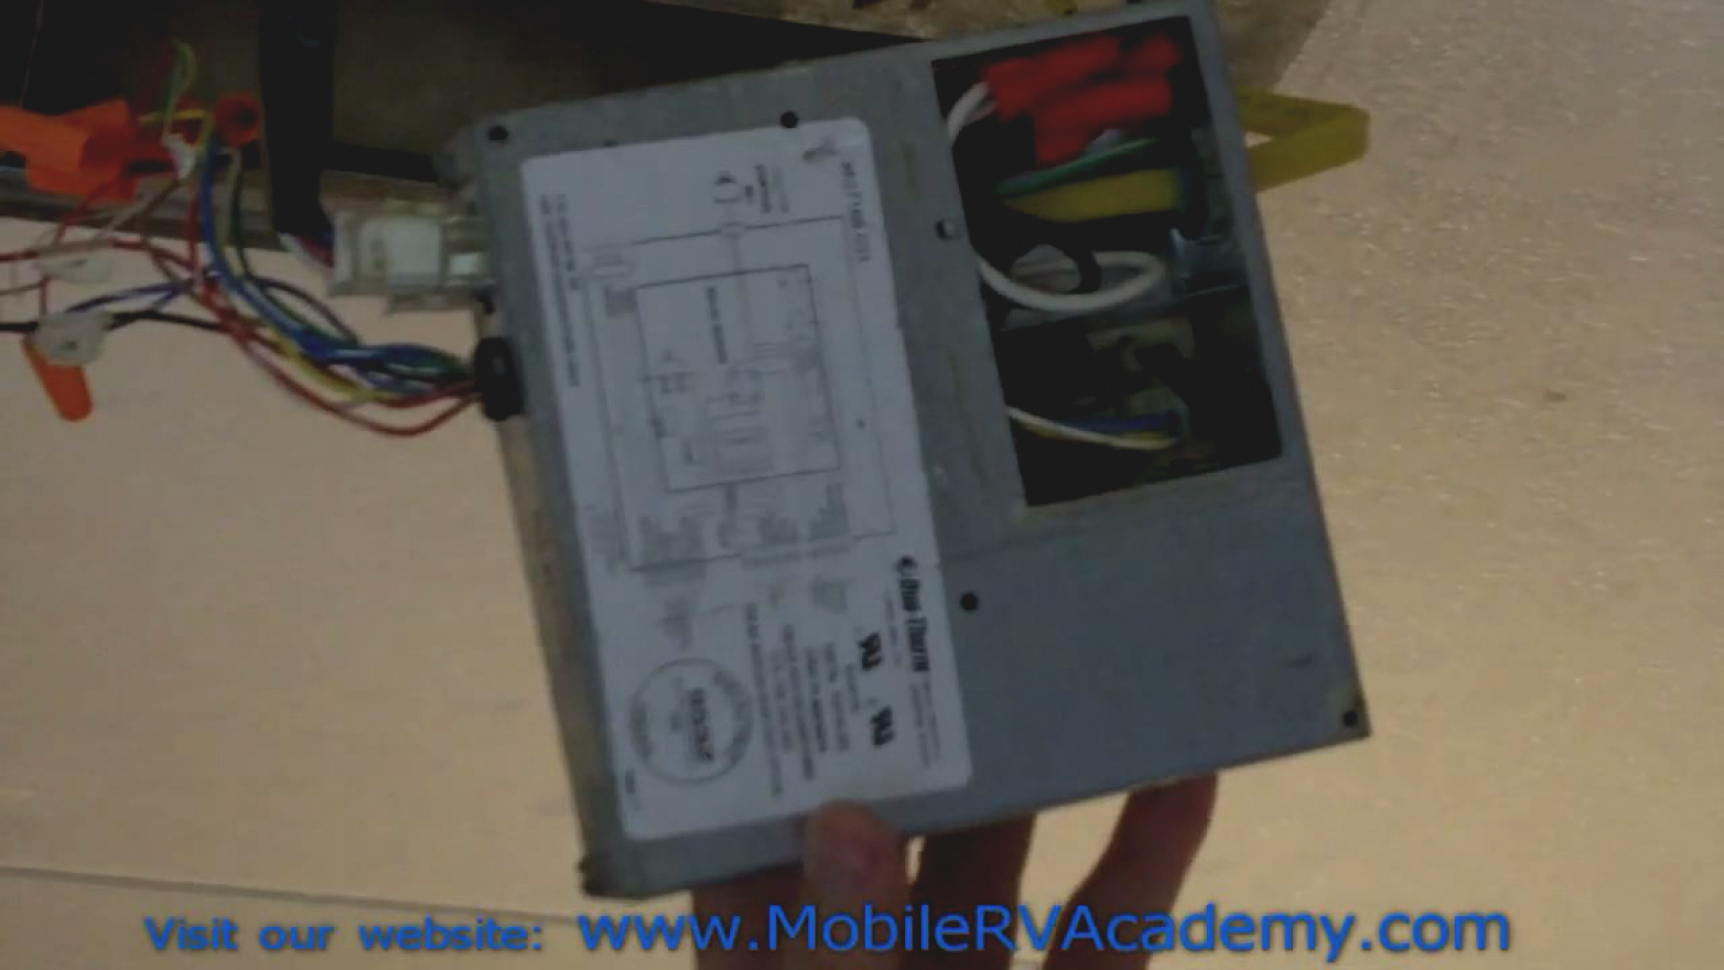 Dometic Single Zone Thermostat Wiring Diagram | Wiring Diagram - Dometic Single Zone Lcd Thermostat Wiring Diagram